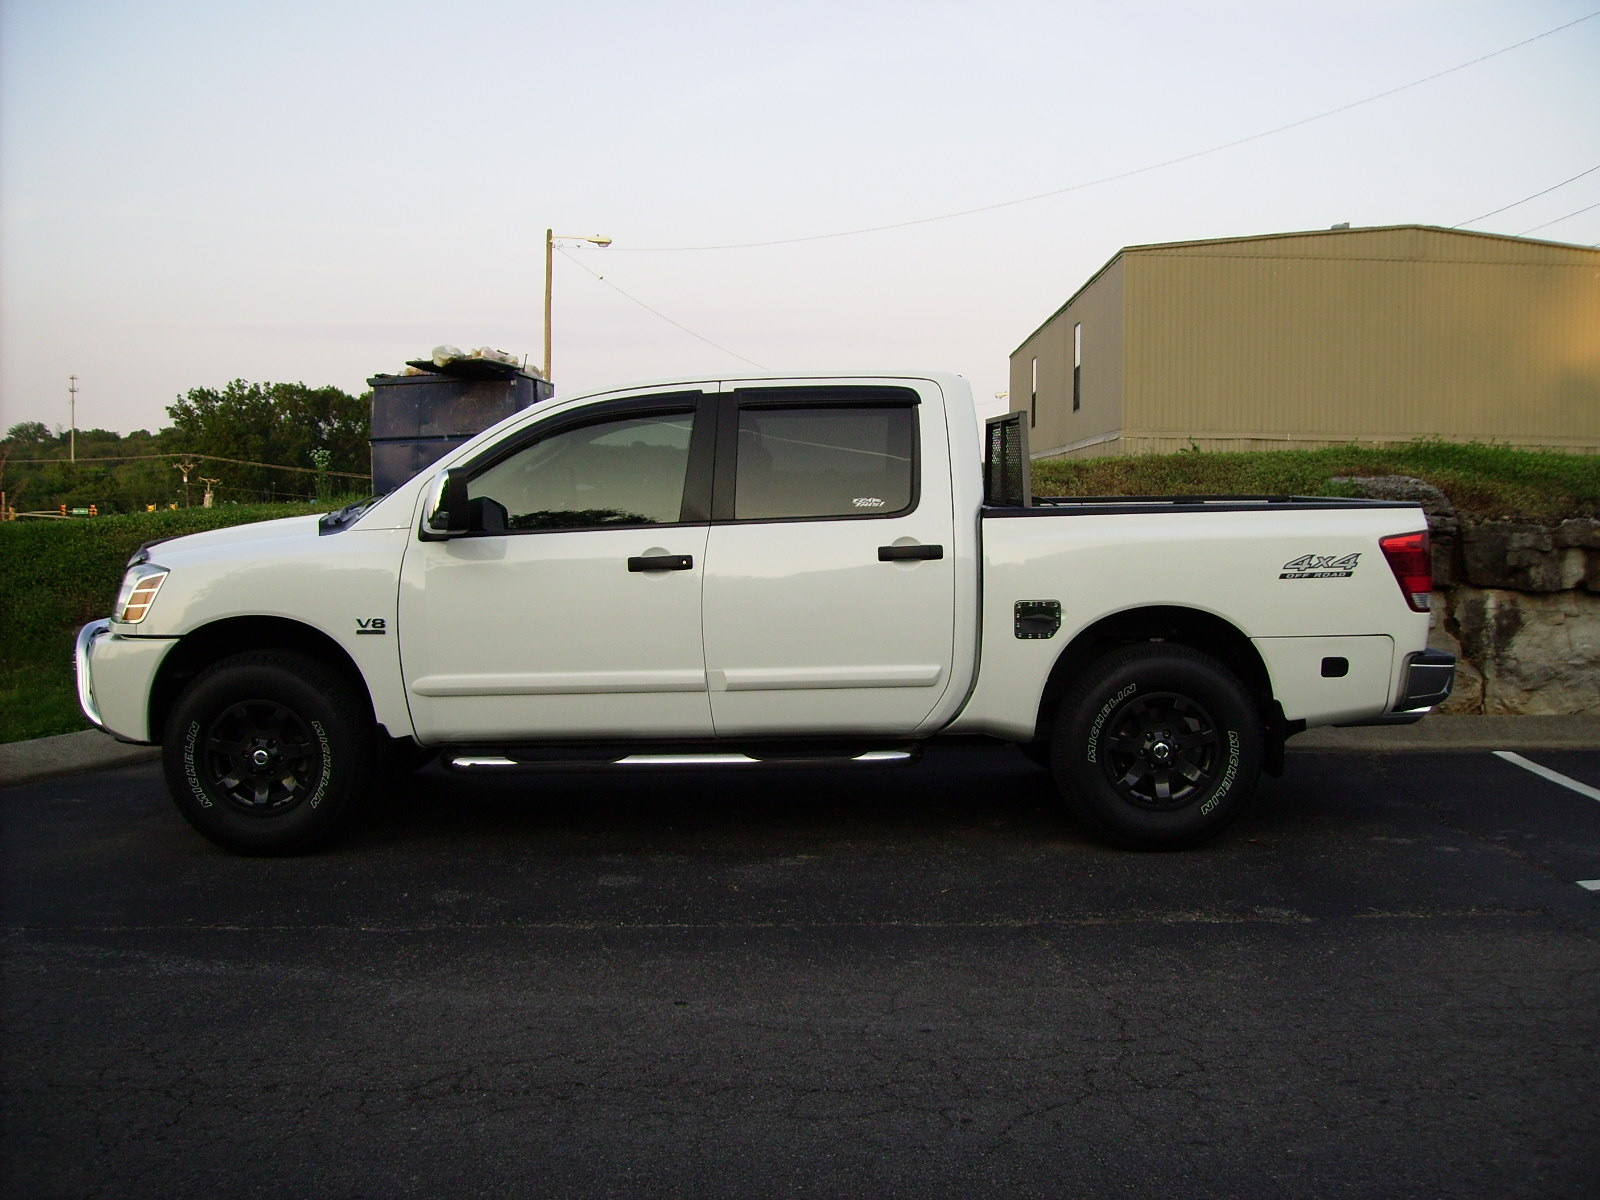 Truck before and after shocks, door handles and detail-truck-leveled-detailed-003.jpg